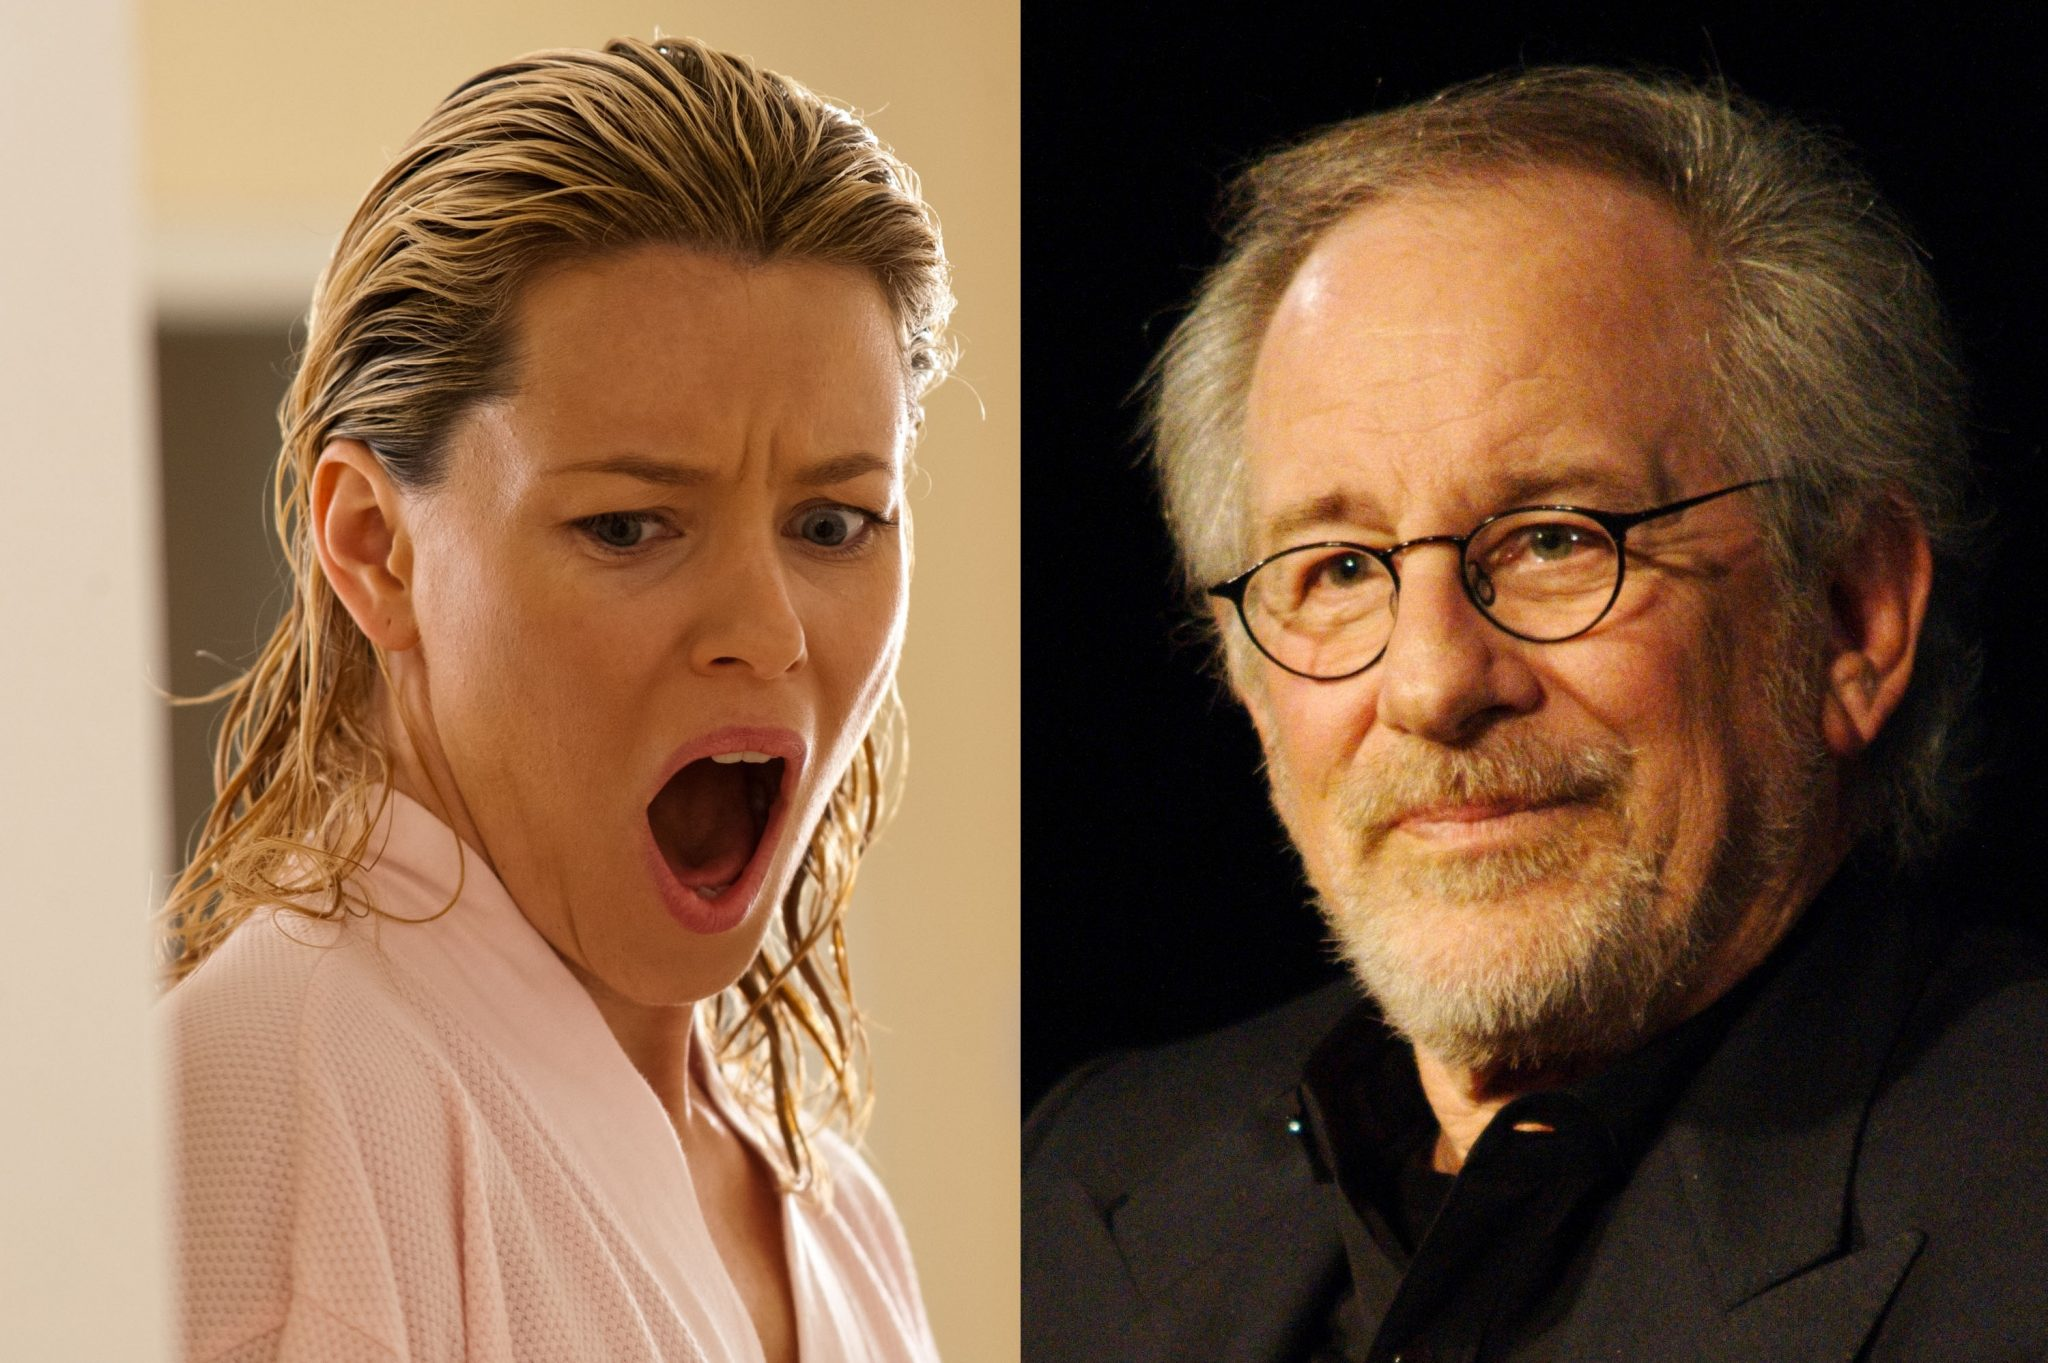 Elizabeth Banks Slams Steven Spielberg For Lack Of Female Leads